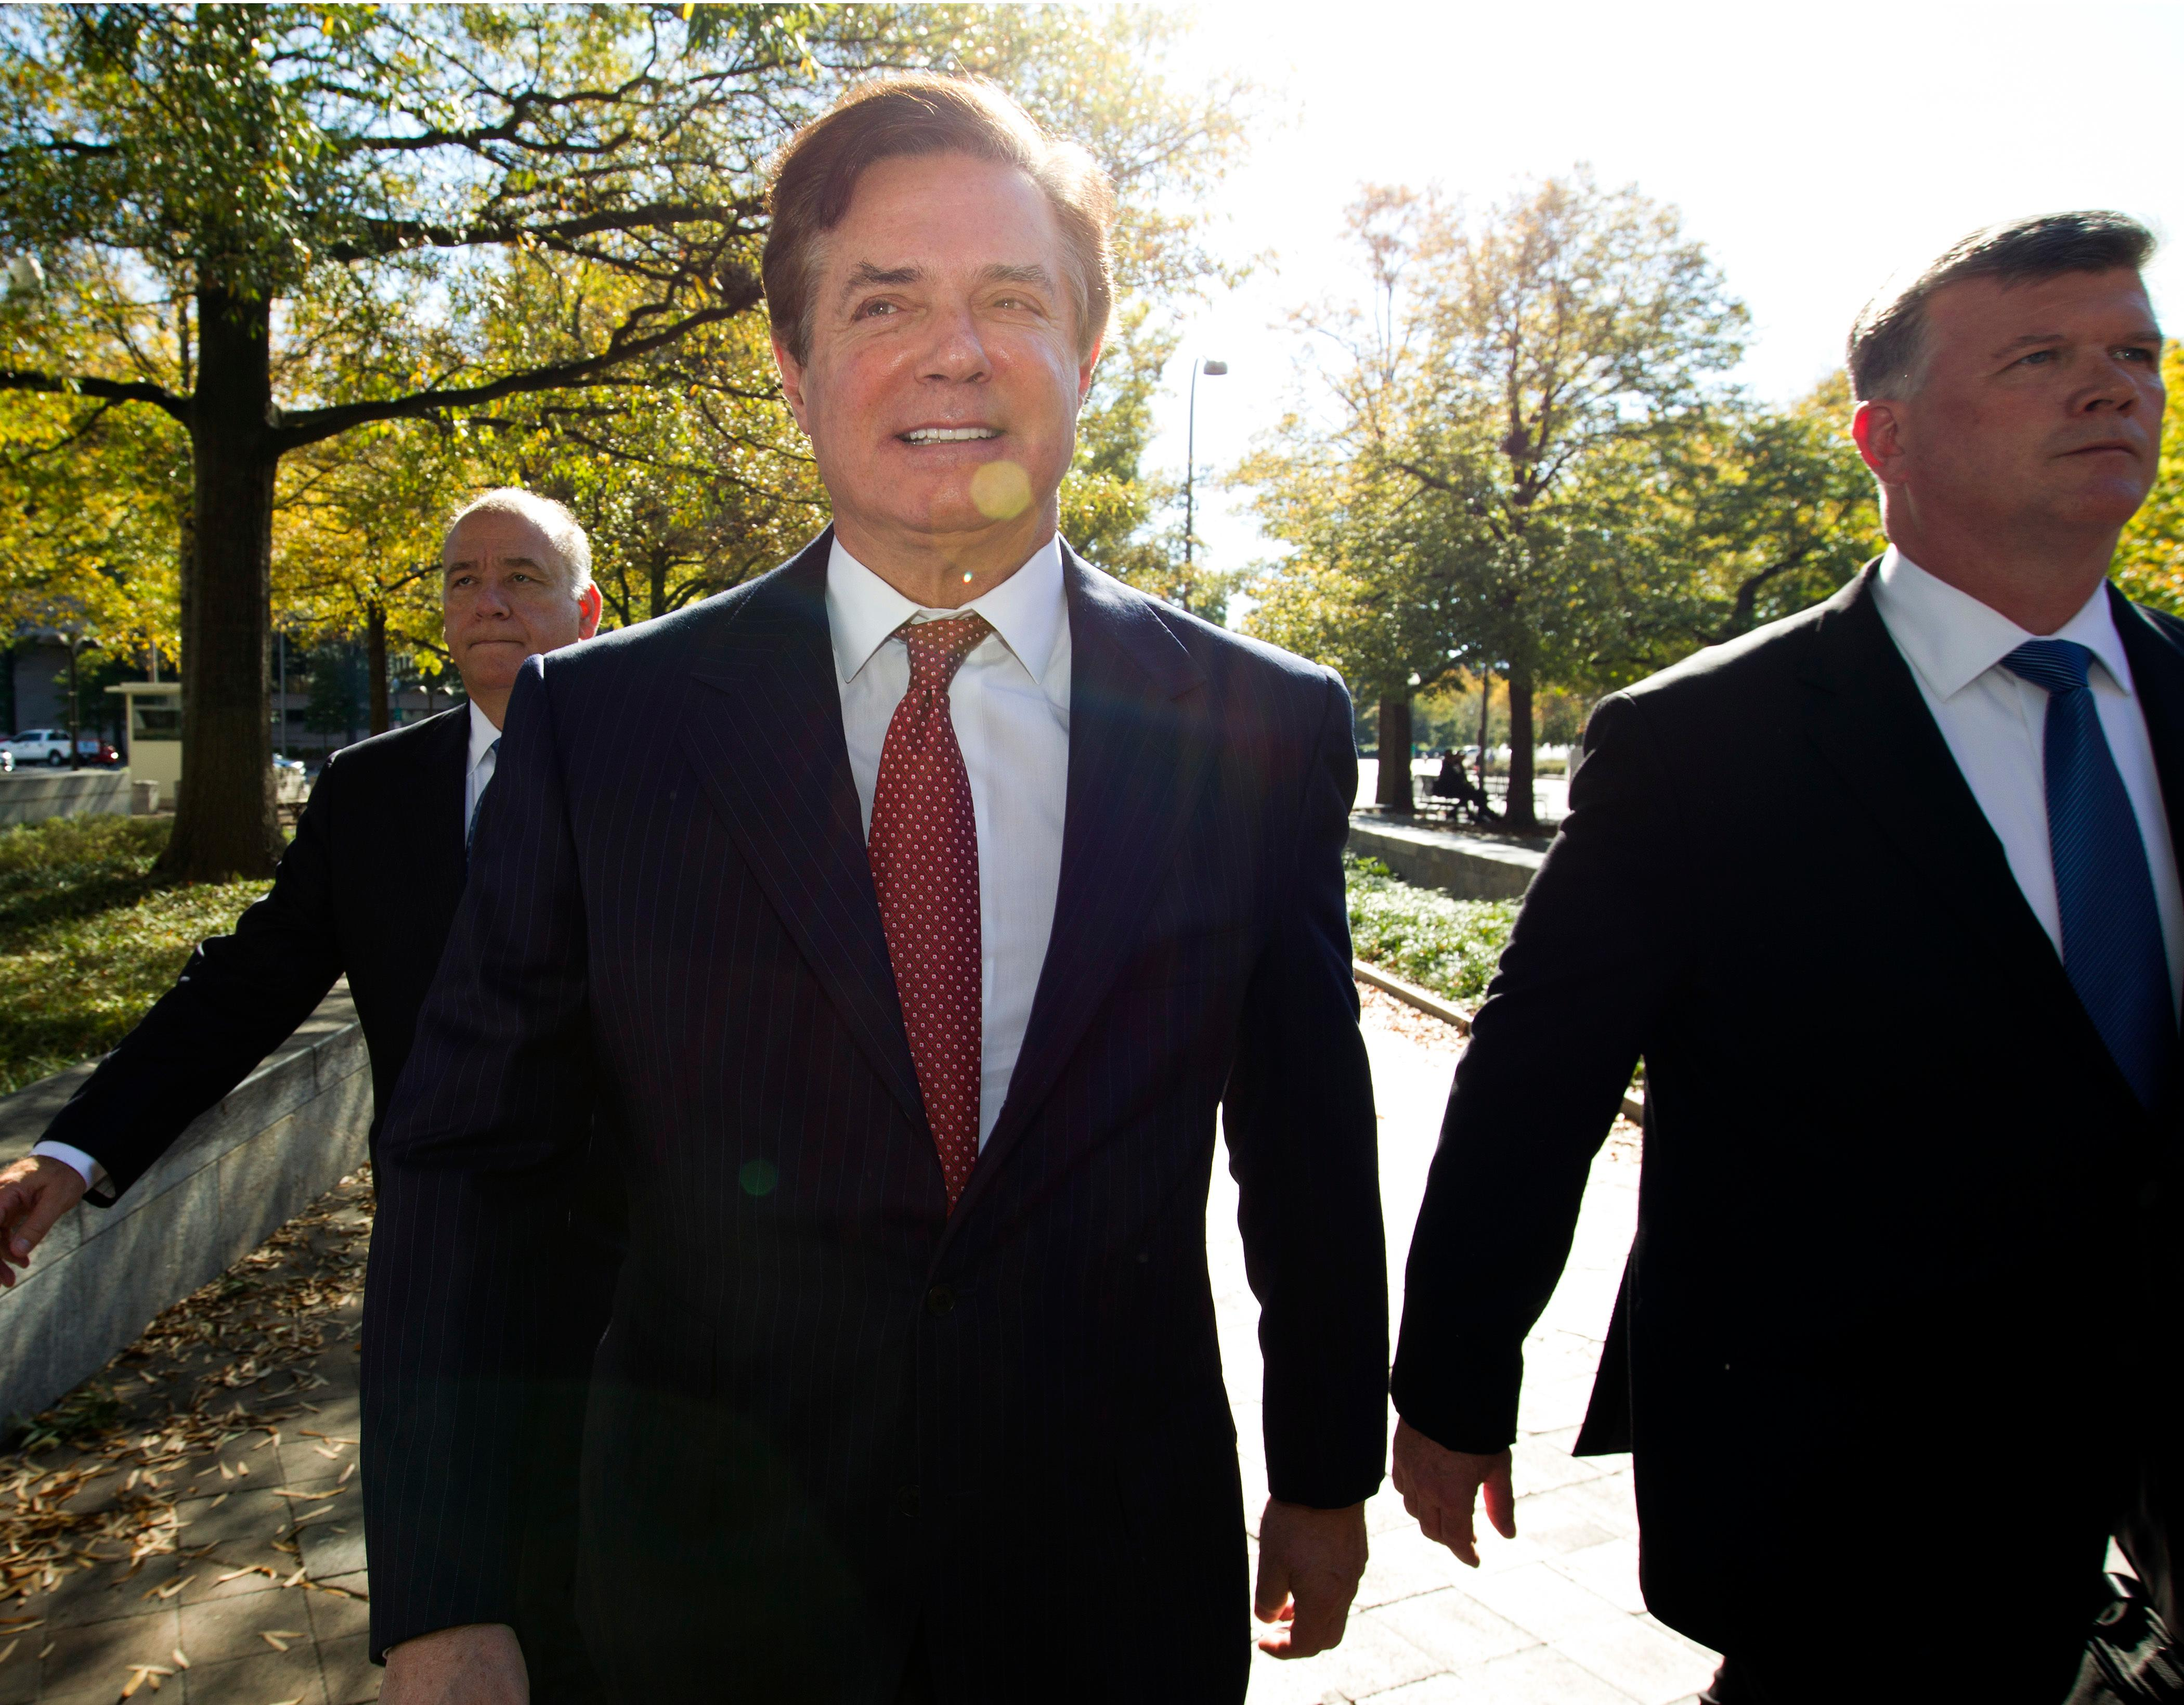 Paul Manafort accompanied by his lawyers, arrives at federal court, in Washington, Thursday, Nov. 2, 2017. ( AP Photo/Jose Luis Magana)